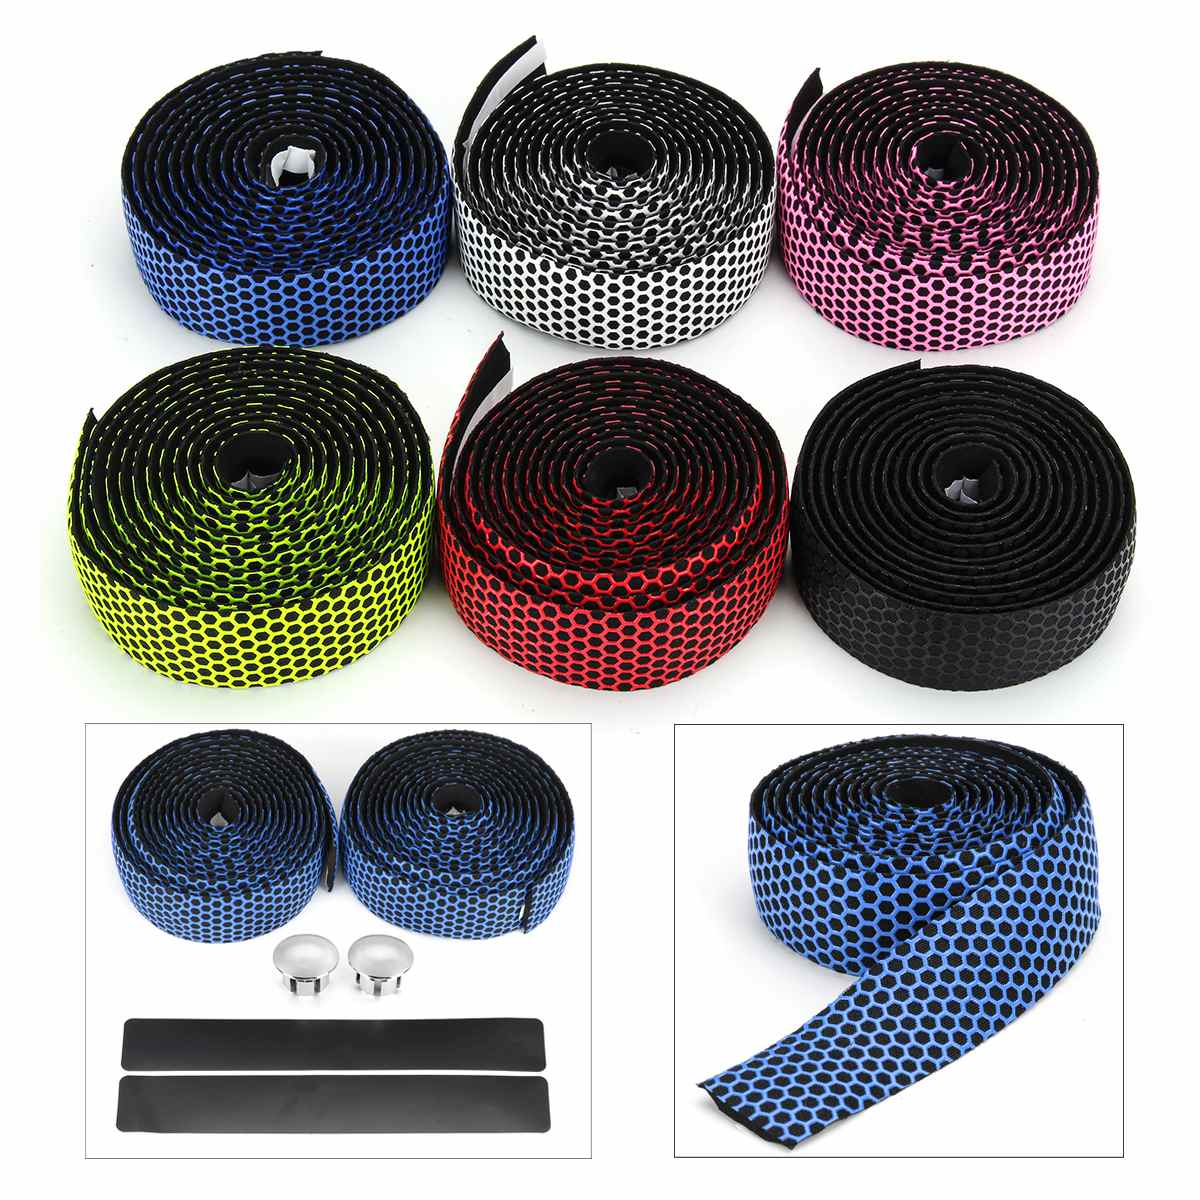 4pcs Bike Handlebar Tapes Anti-Slip EVA MTB Road Bicycle Bar Wrap Band Belt 2